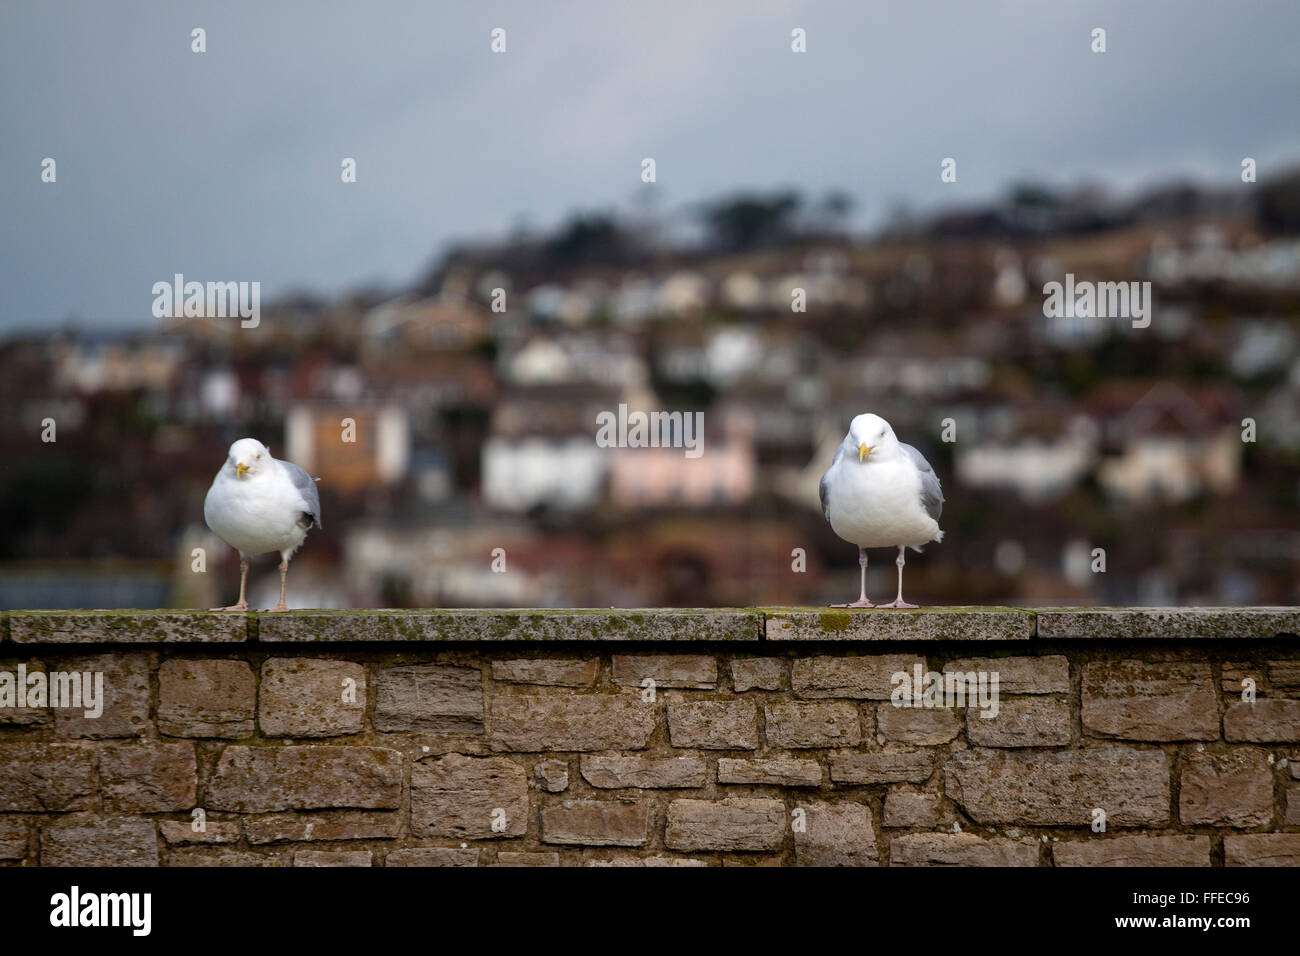 Two seagulls on a wall just far enough apart that they may have fallen out - Stock Image